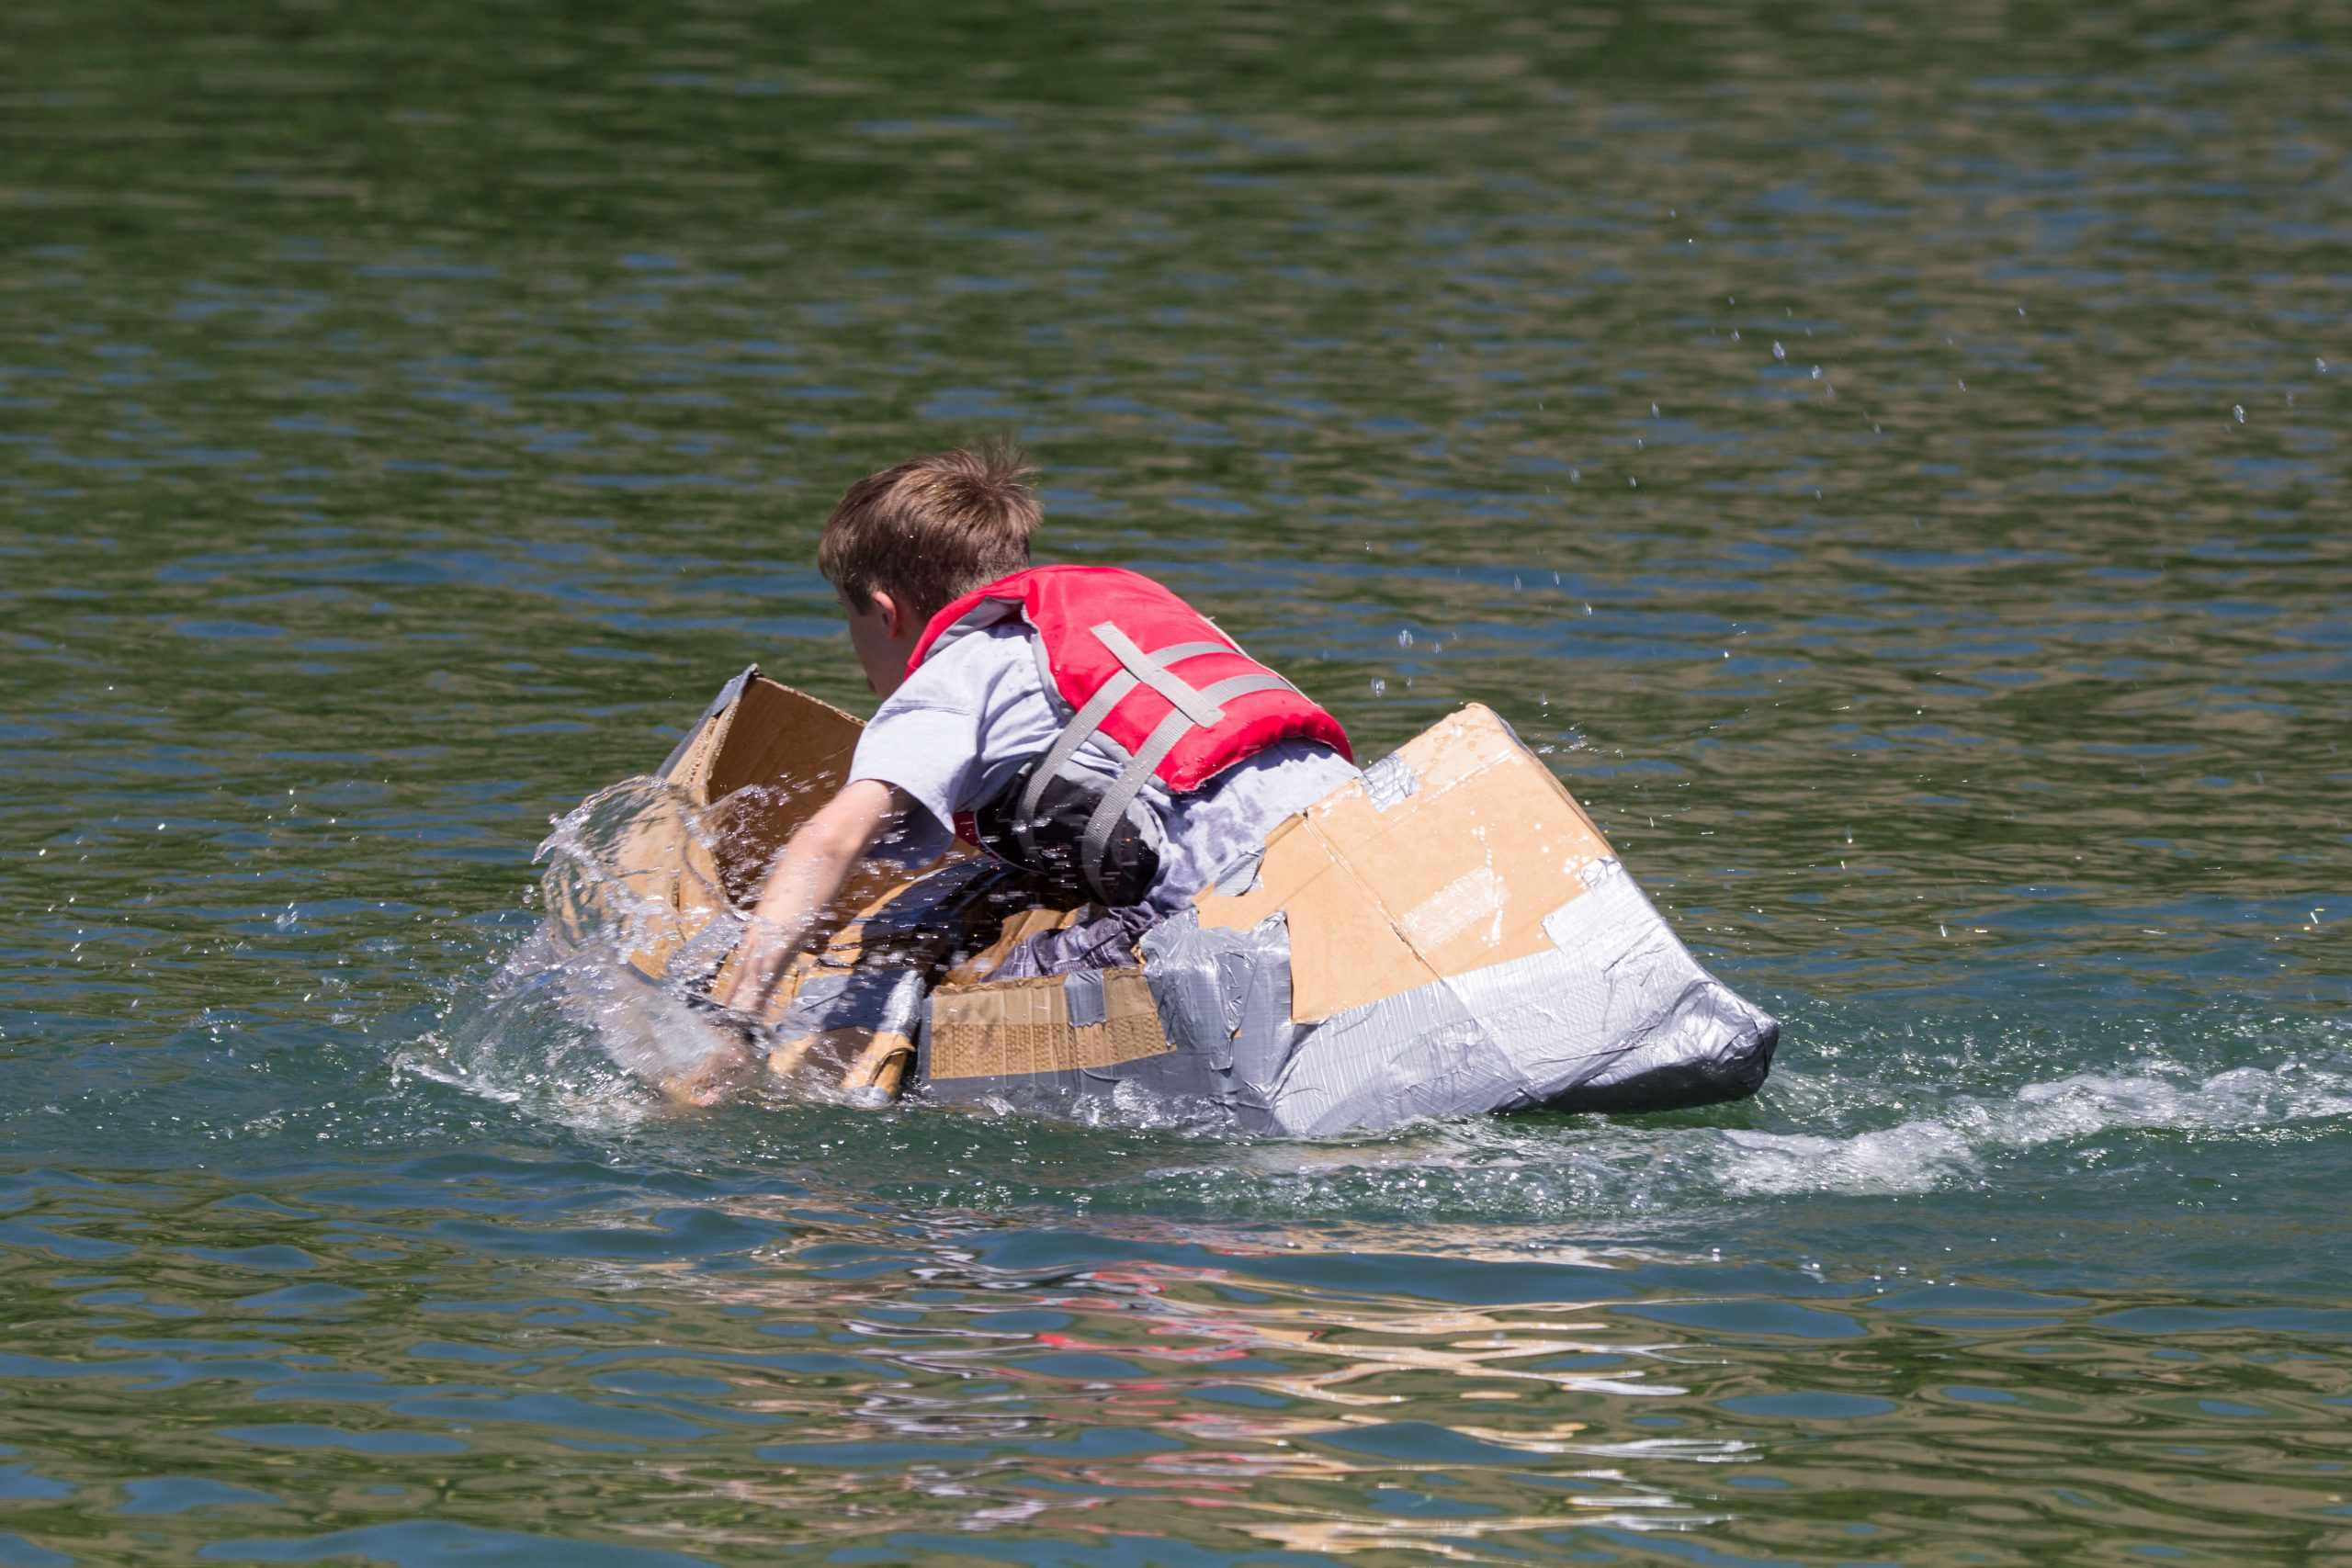 a Boy Paddling a Boat Made of Cardboard